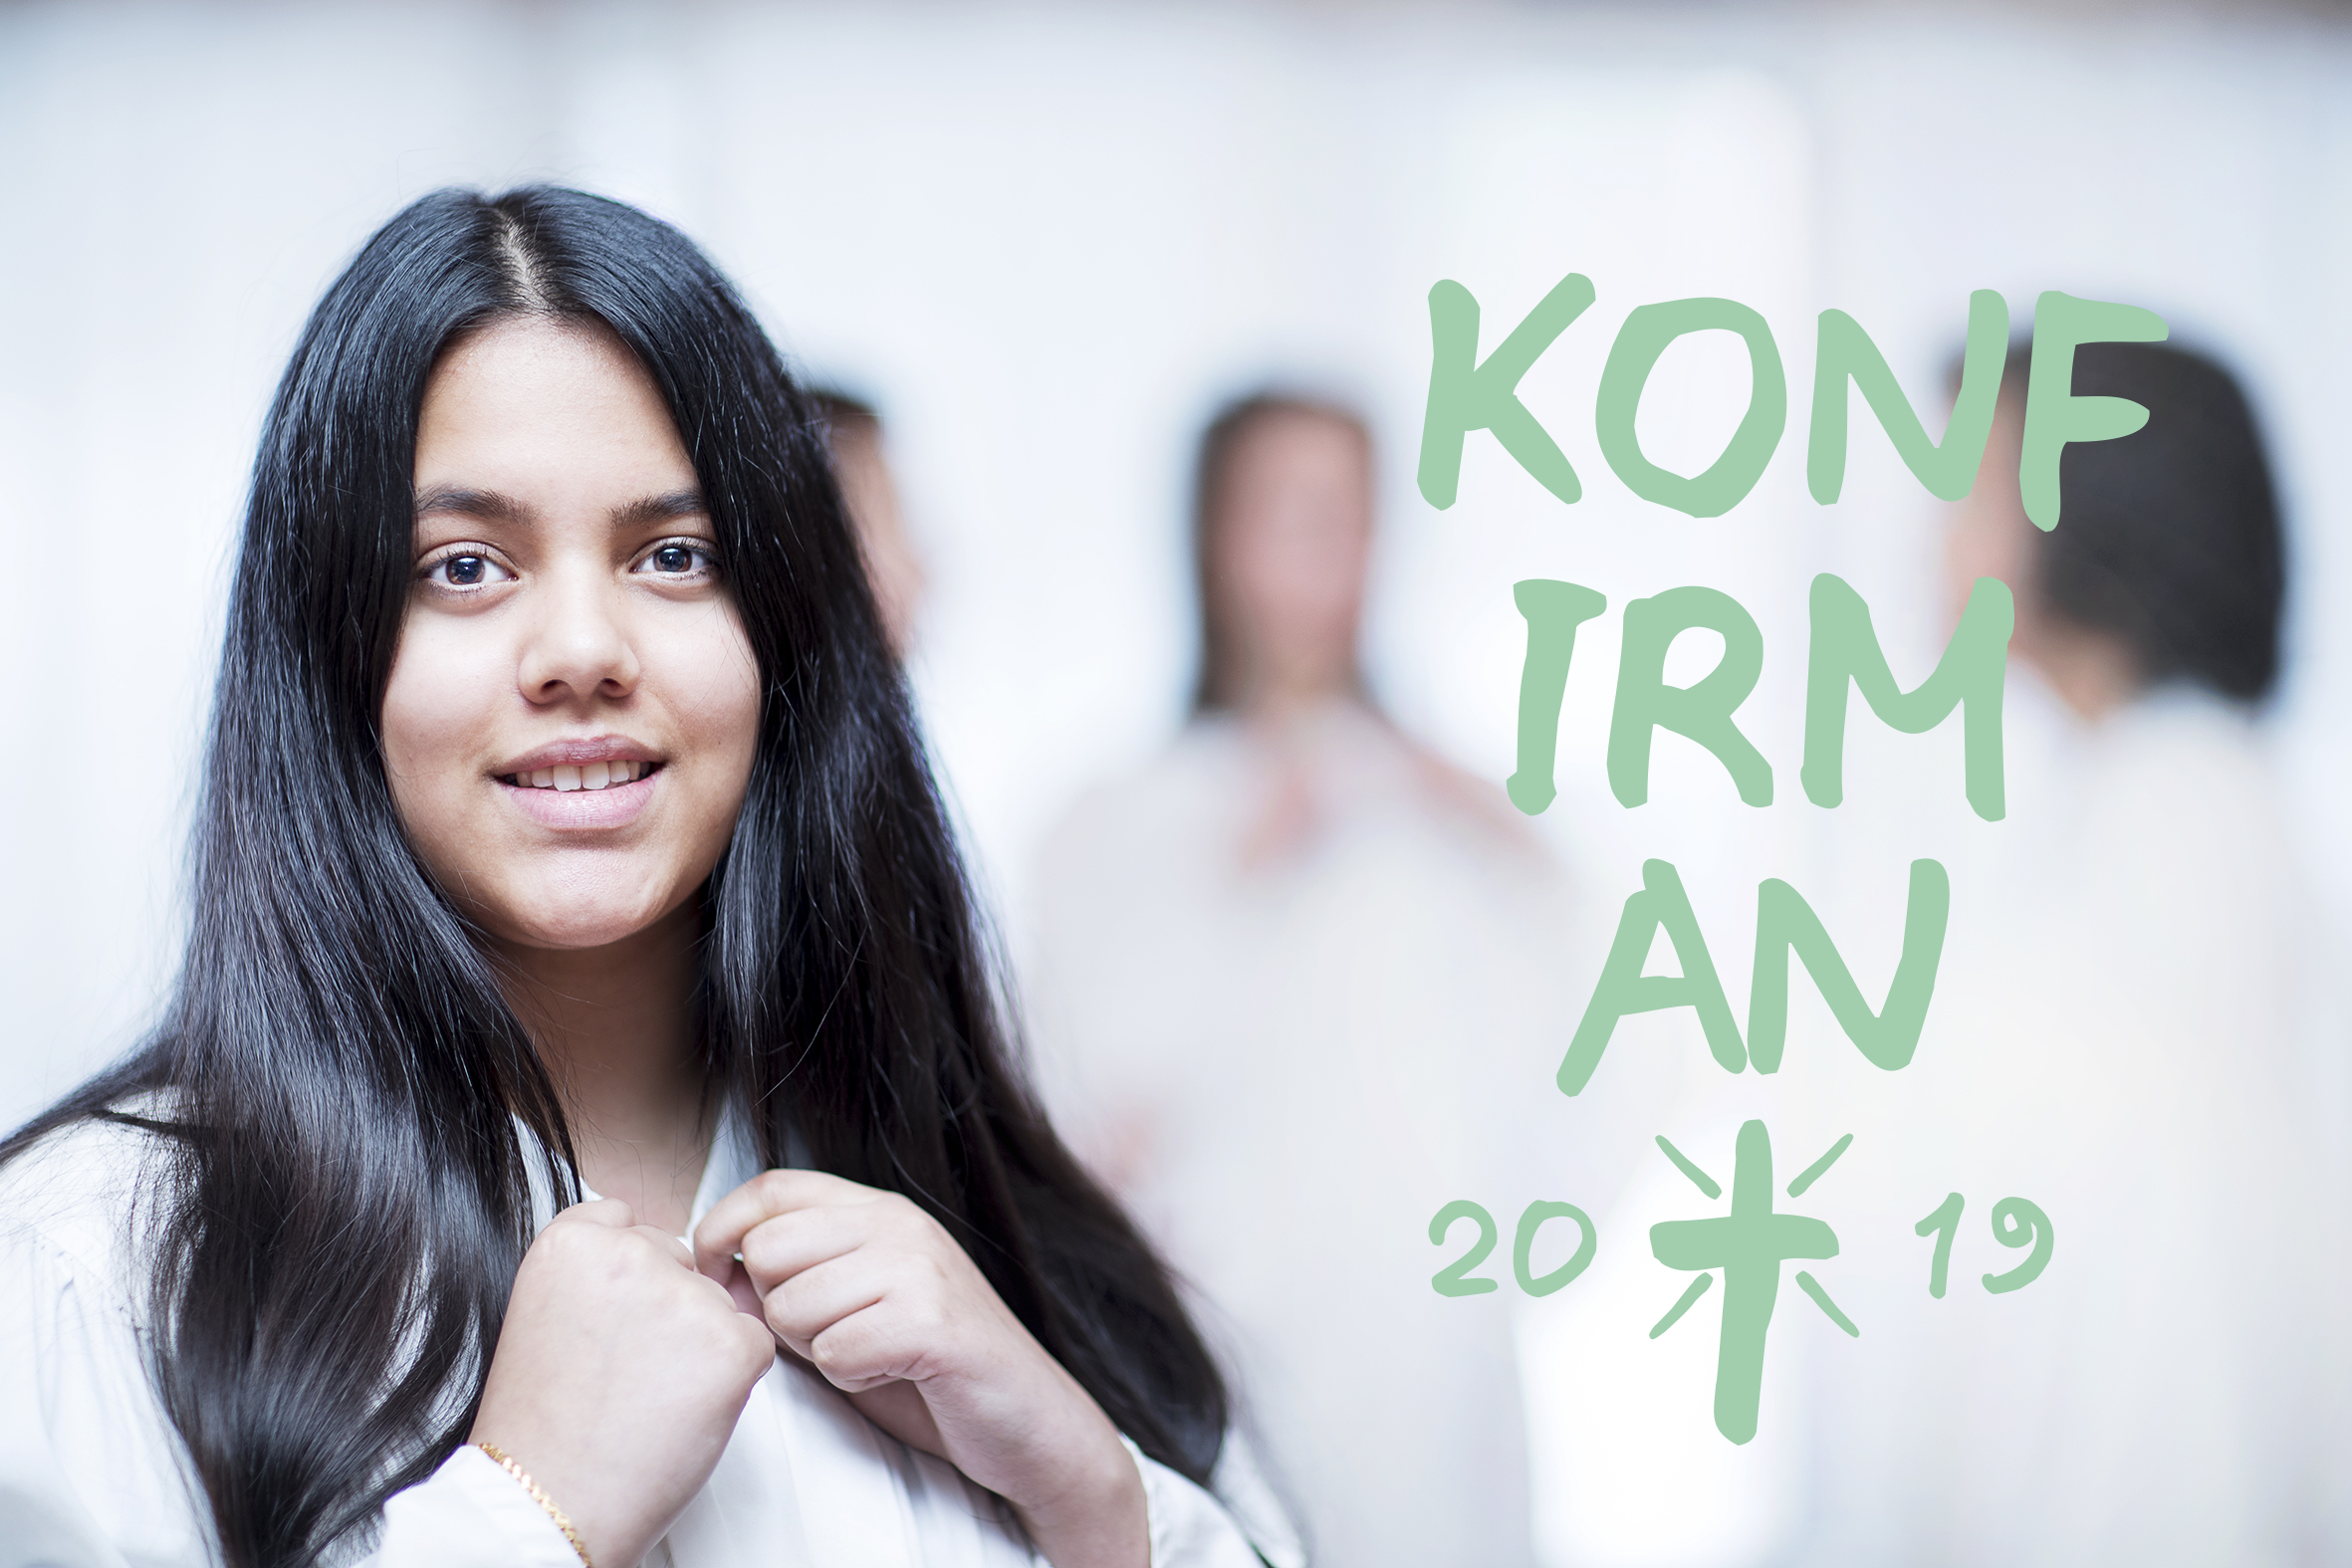 Konfirmanttidens program 2019